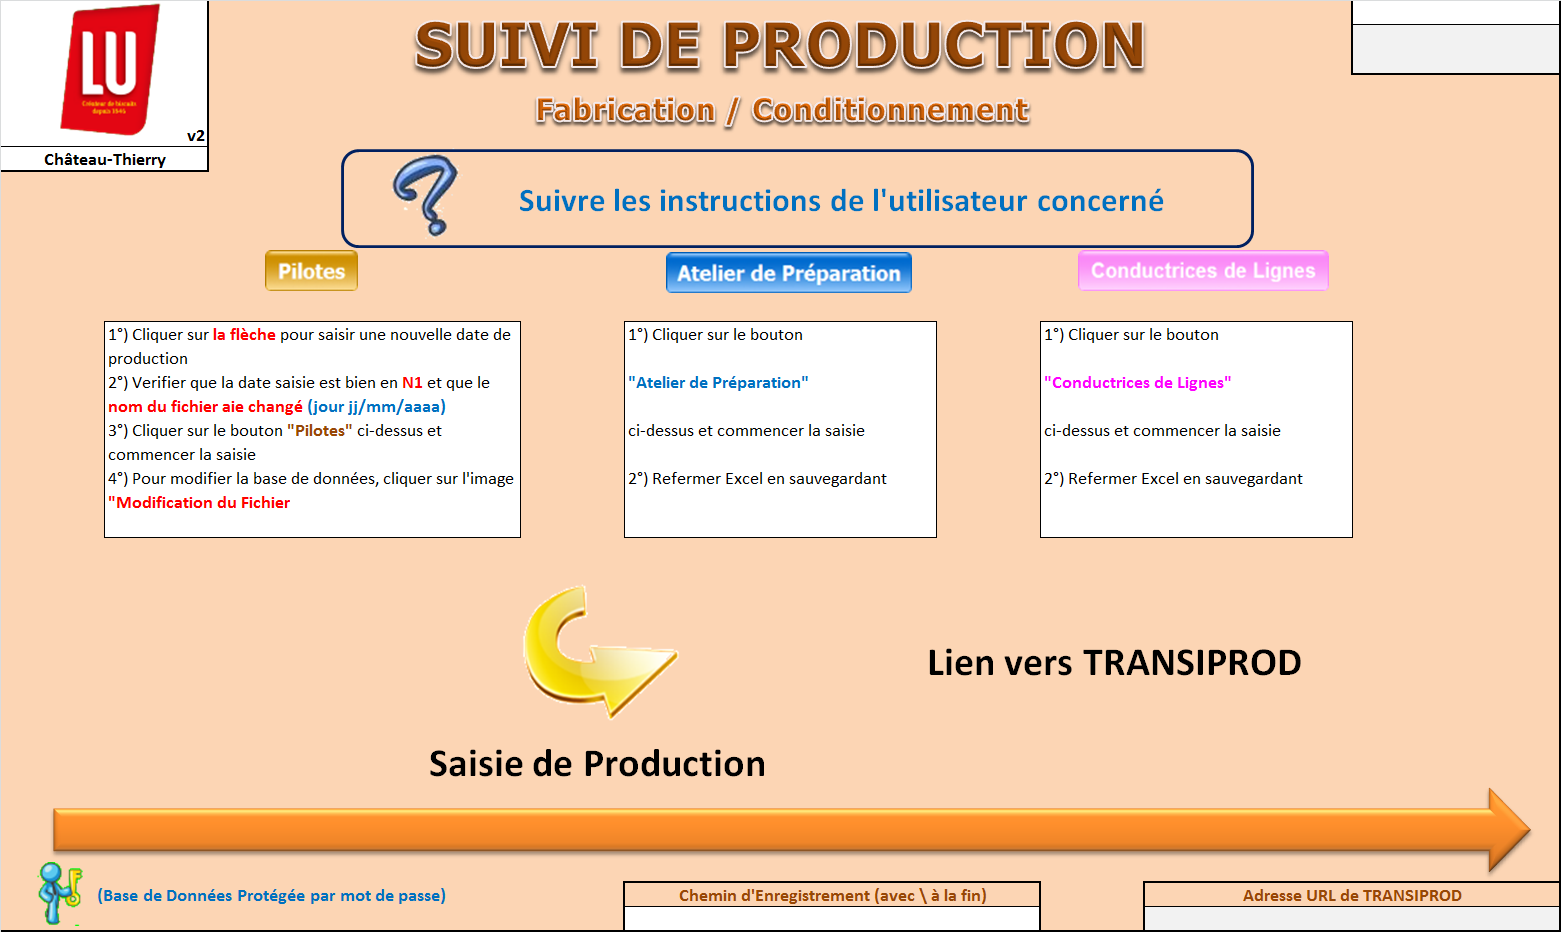 ANNEXE 3 : SUIVI DE PRODUCTION (1) - Interface Principale du Suivi de la Production